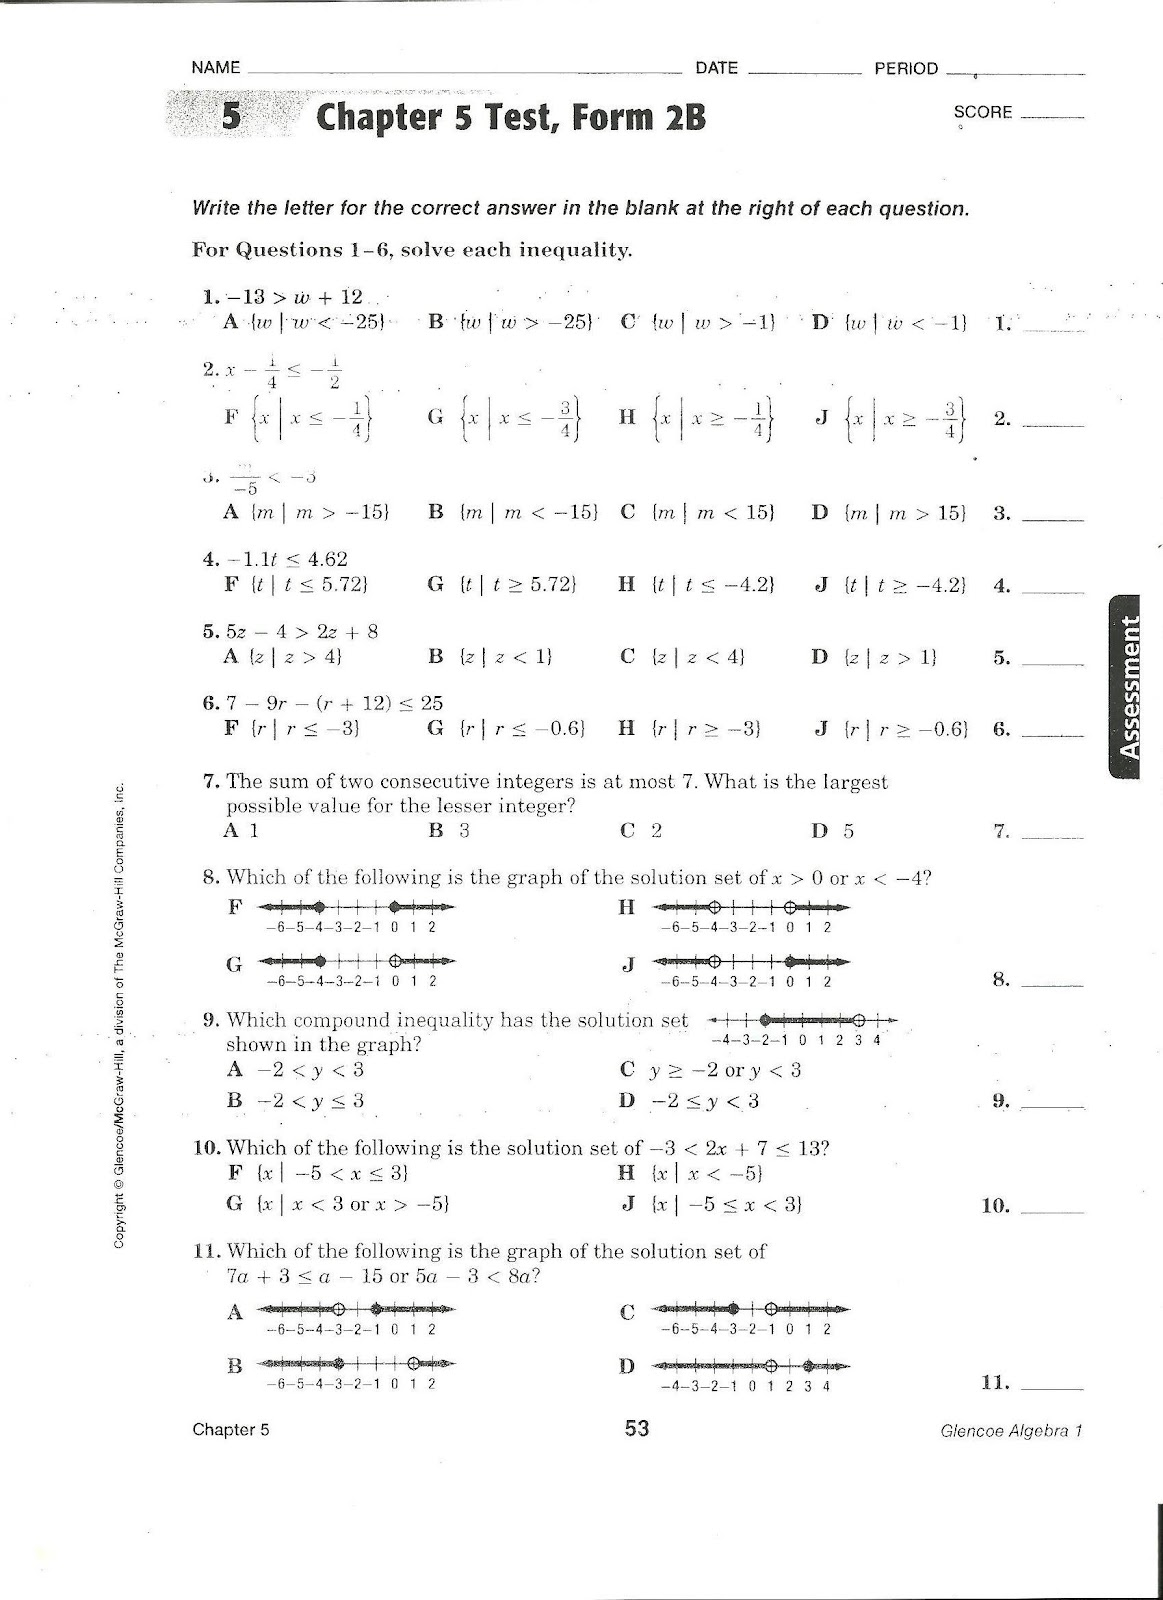 worksheet Glencoe Algebra 1 Worksheets glencoe mcgraw hill algebra 1 answers worksheets abitlikethis of maths board paper 2016 prentice hall mathematics 1